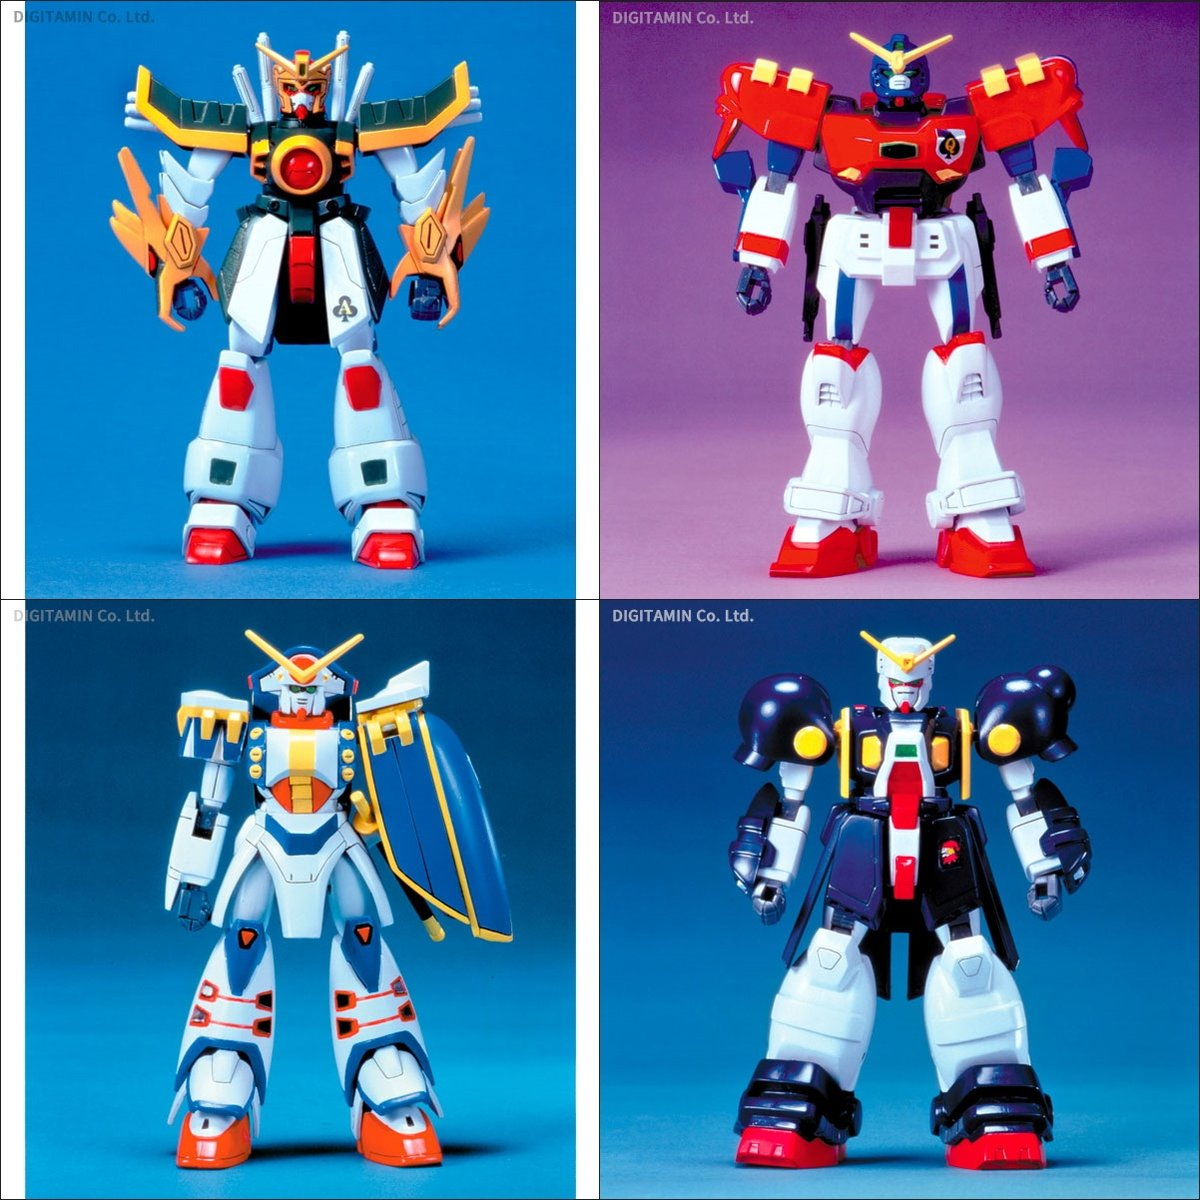 1 144 G Gundam Models Are Getting Reissued In November Gundam Kits Collection News And Reviews